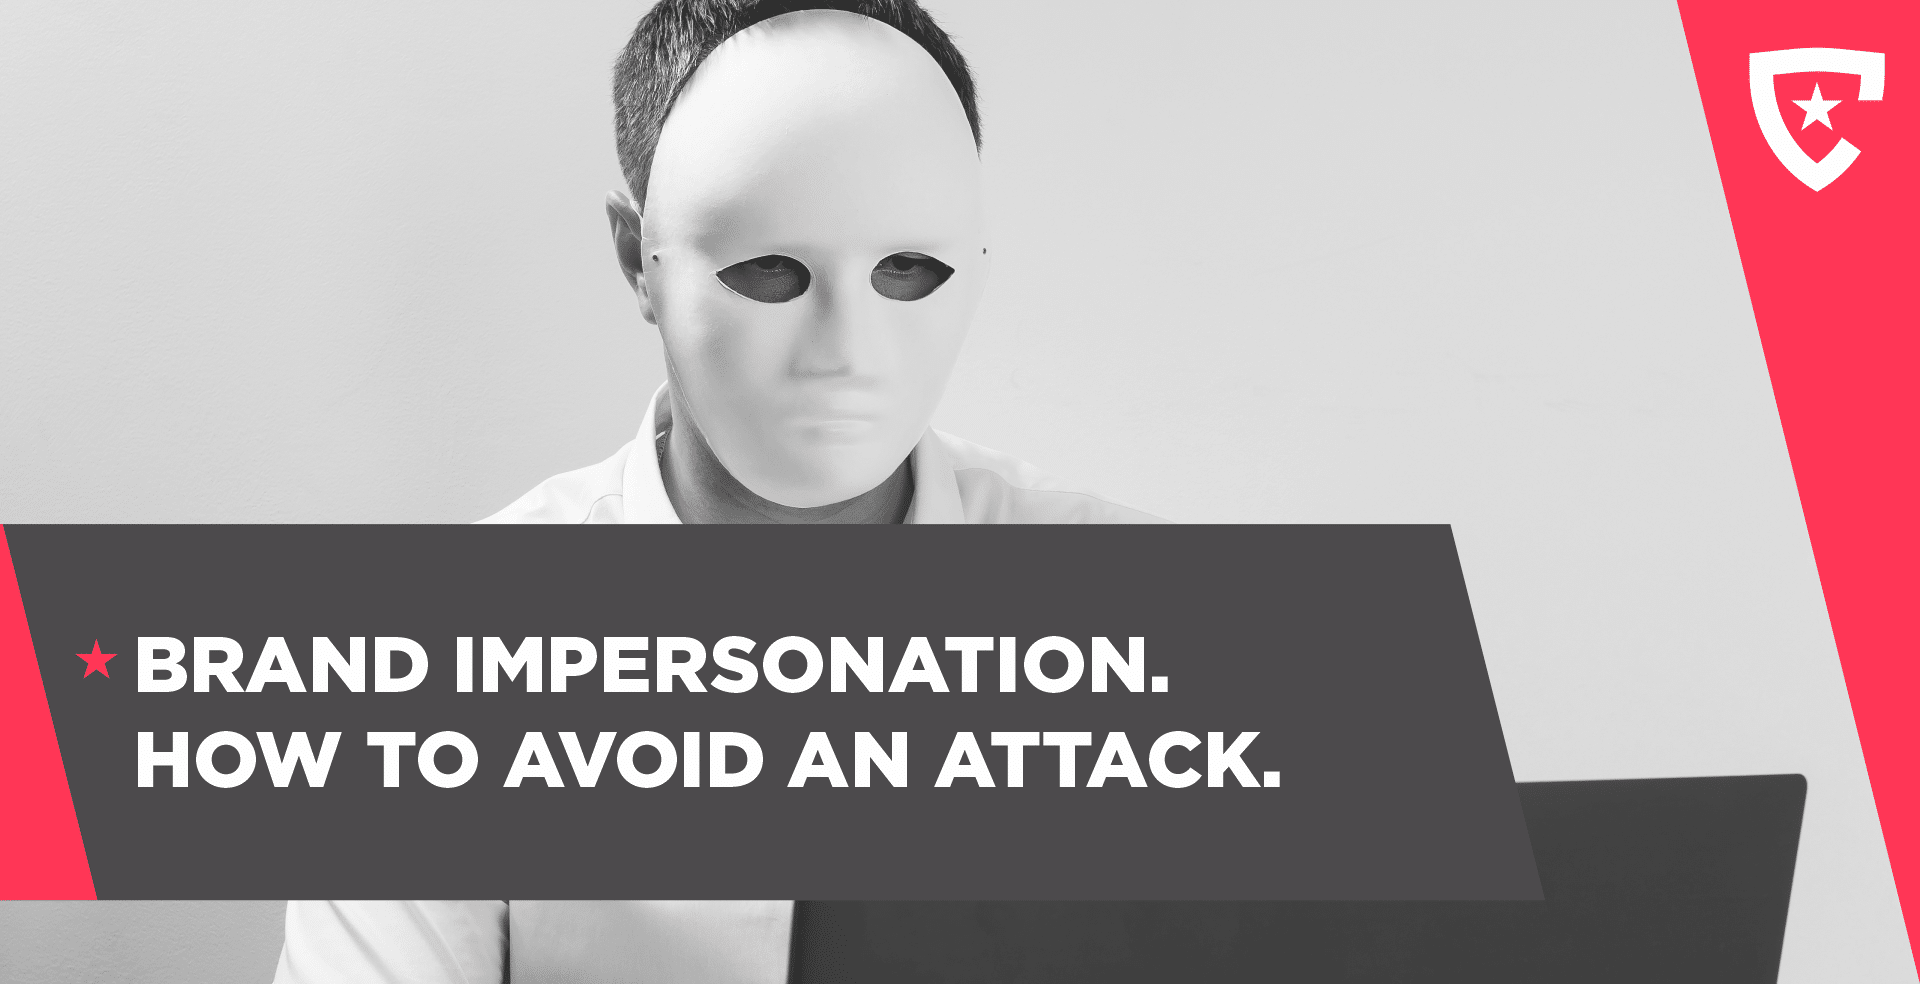 Brand Impersonation. How To Avoid An Attack